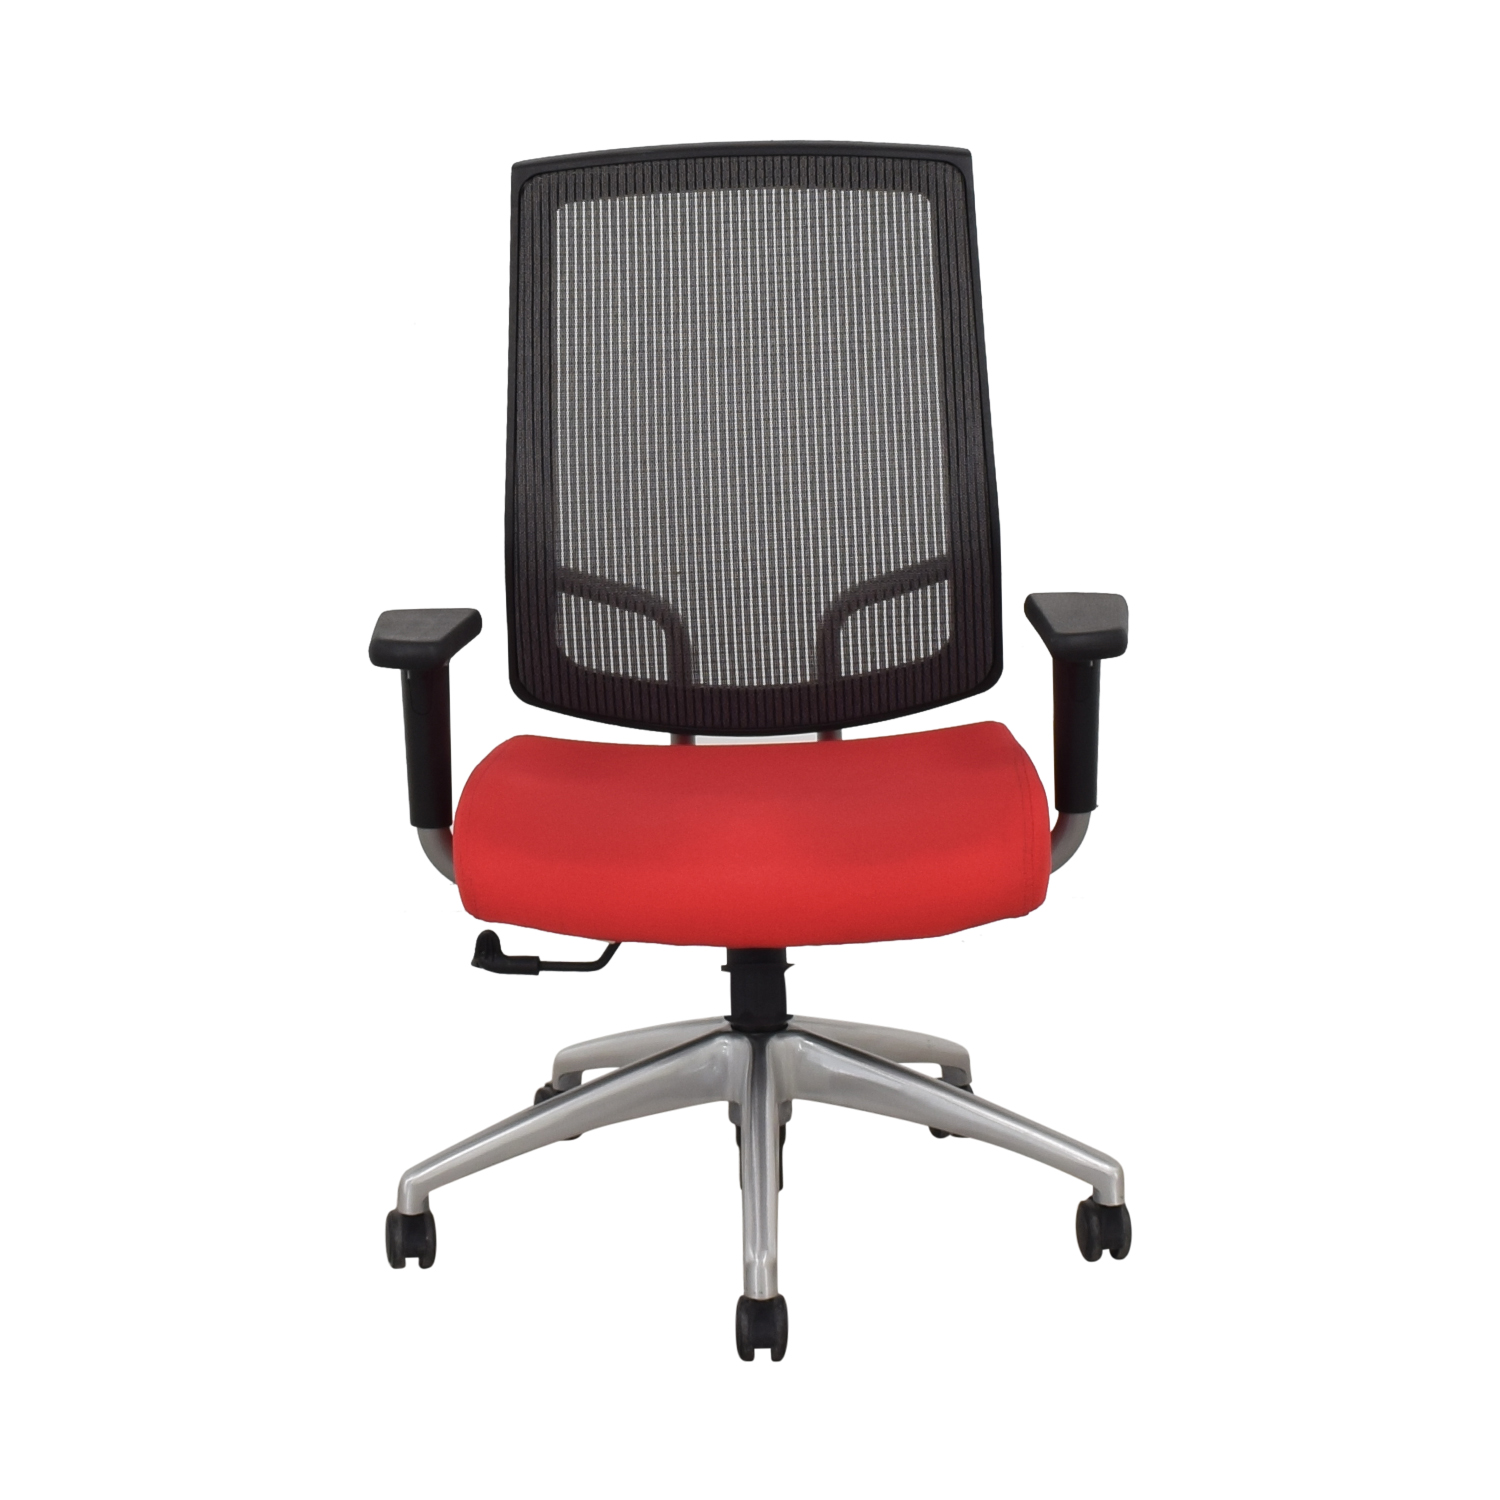 SitOnIt SitOnIt Focus High Back Office Chair dimensions